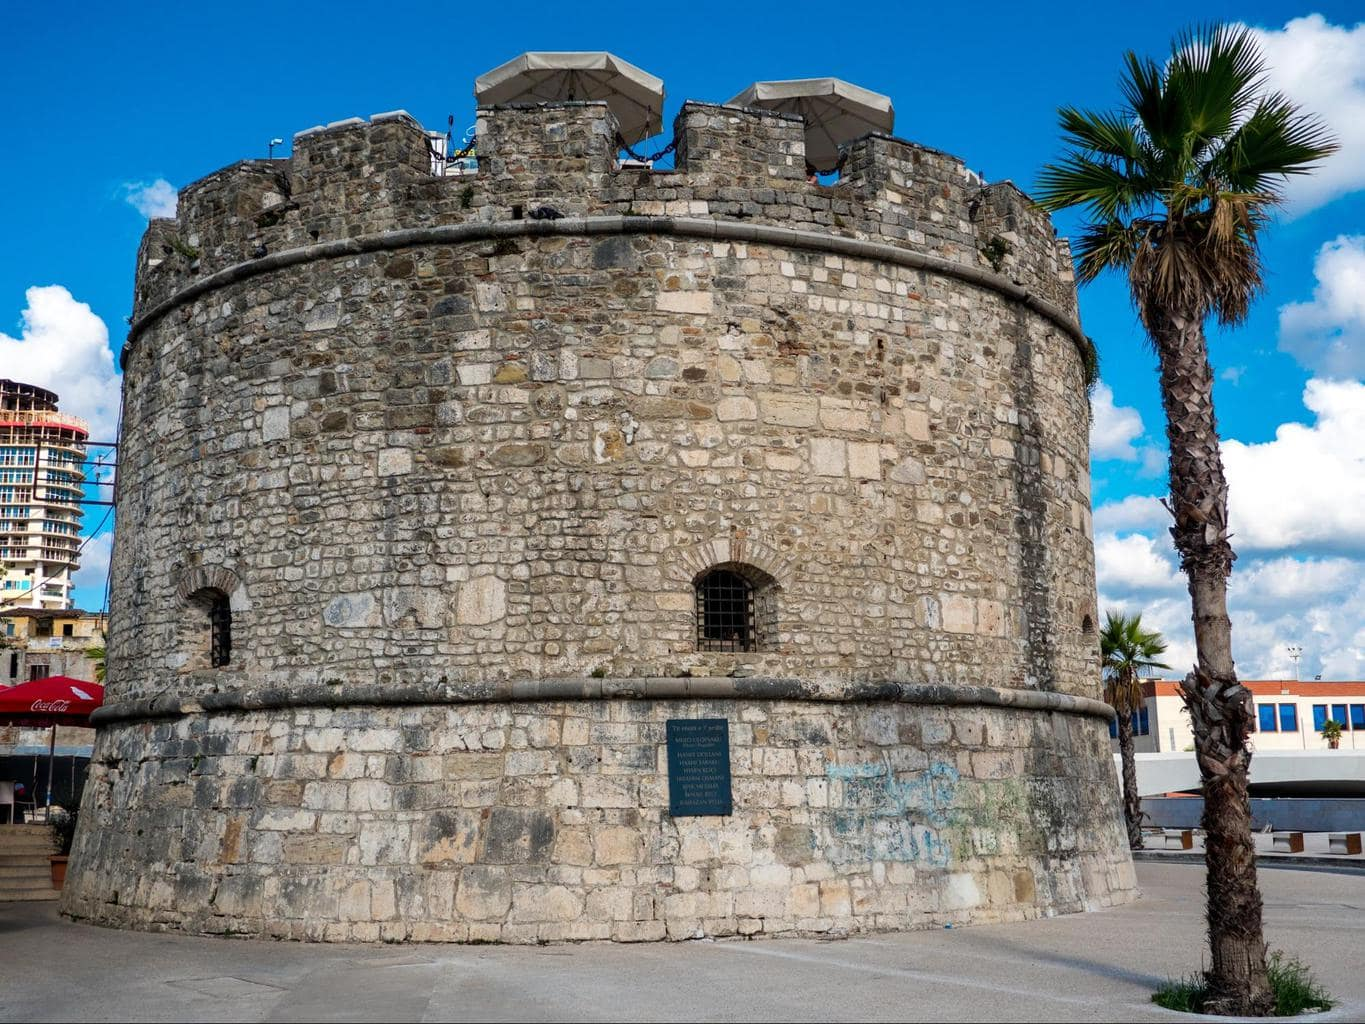 The Venetian Tower of Durres